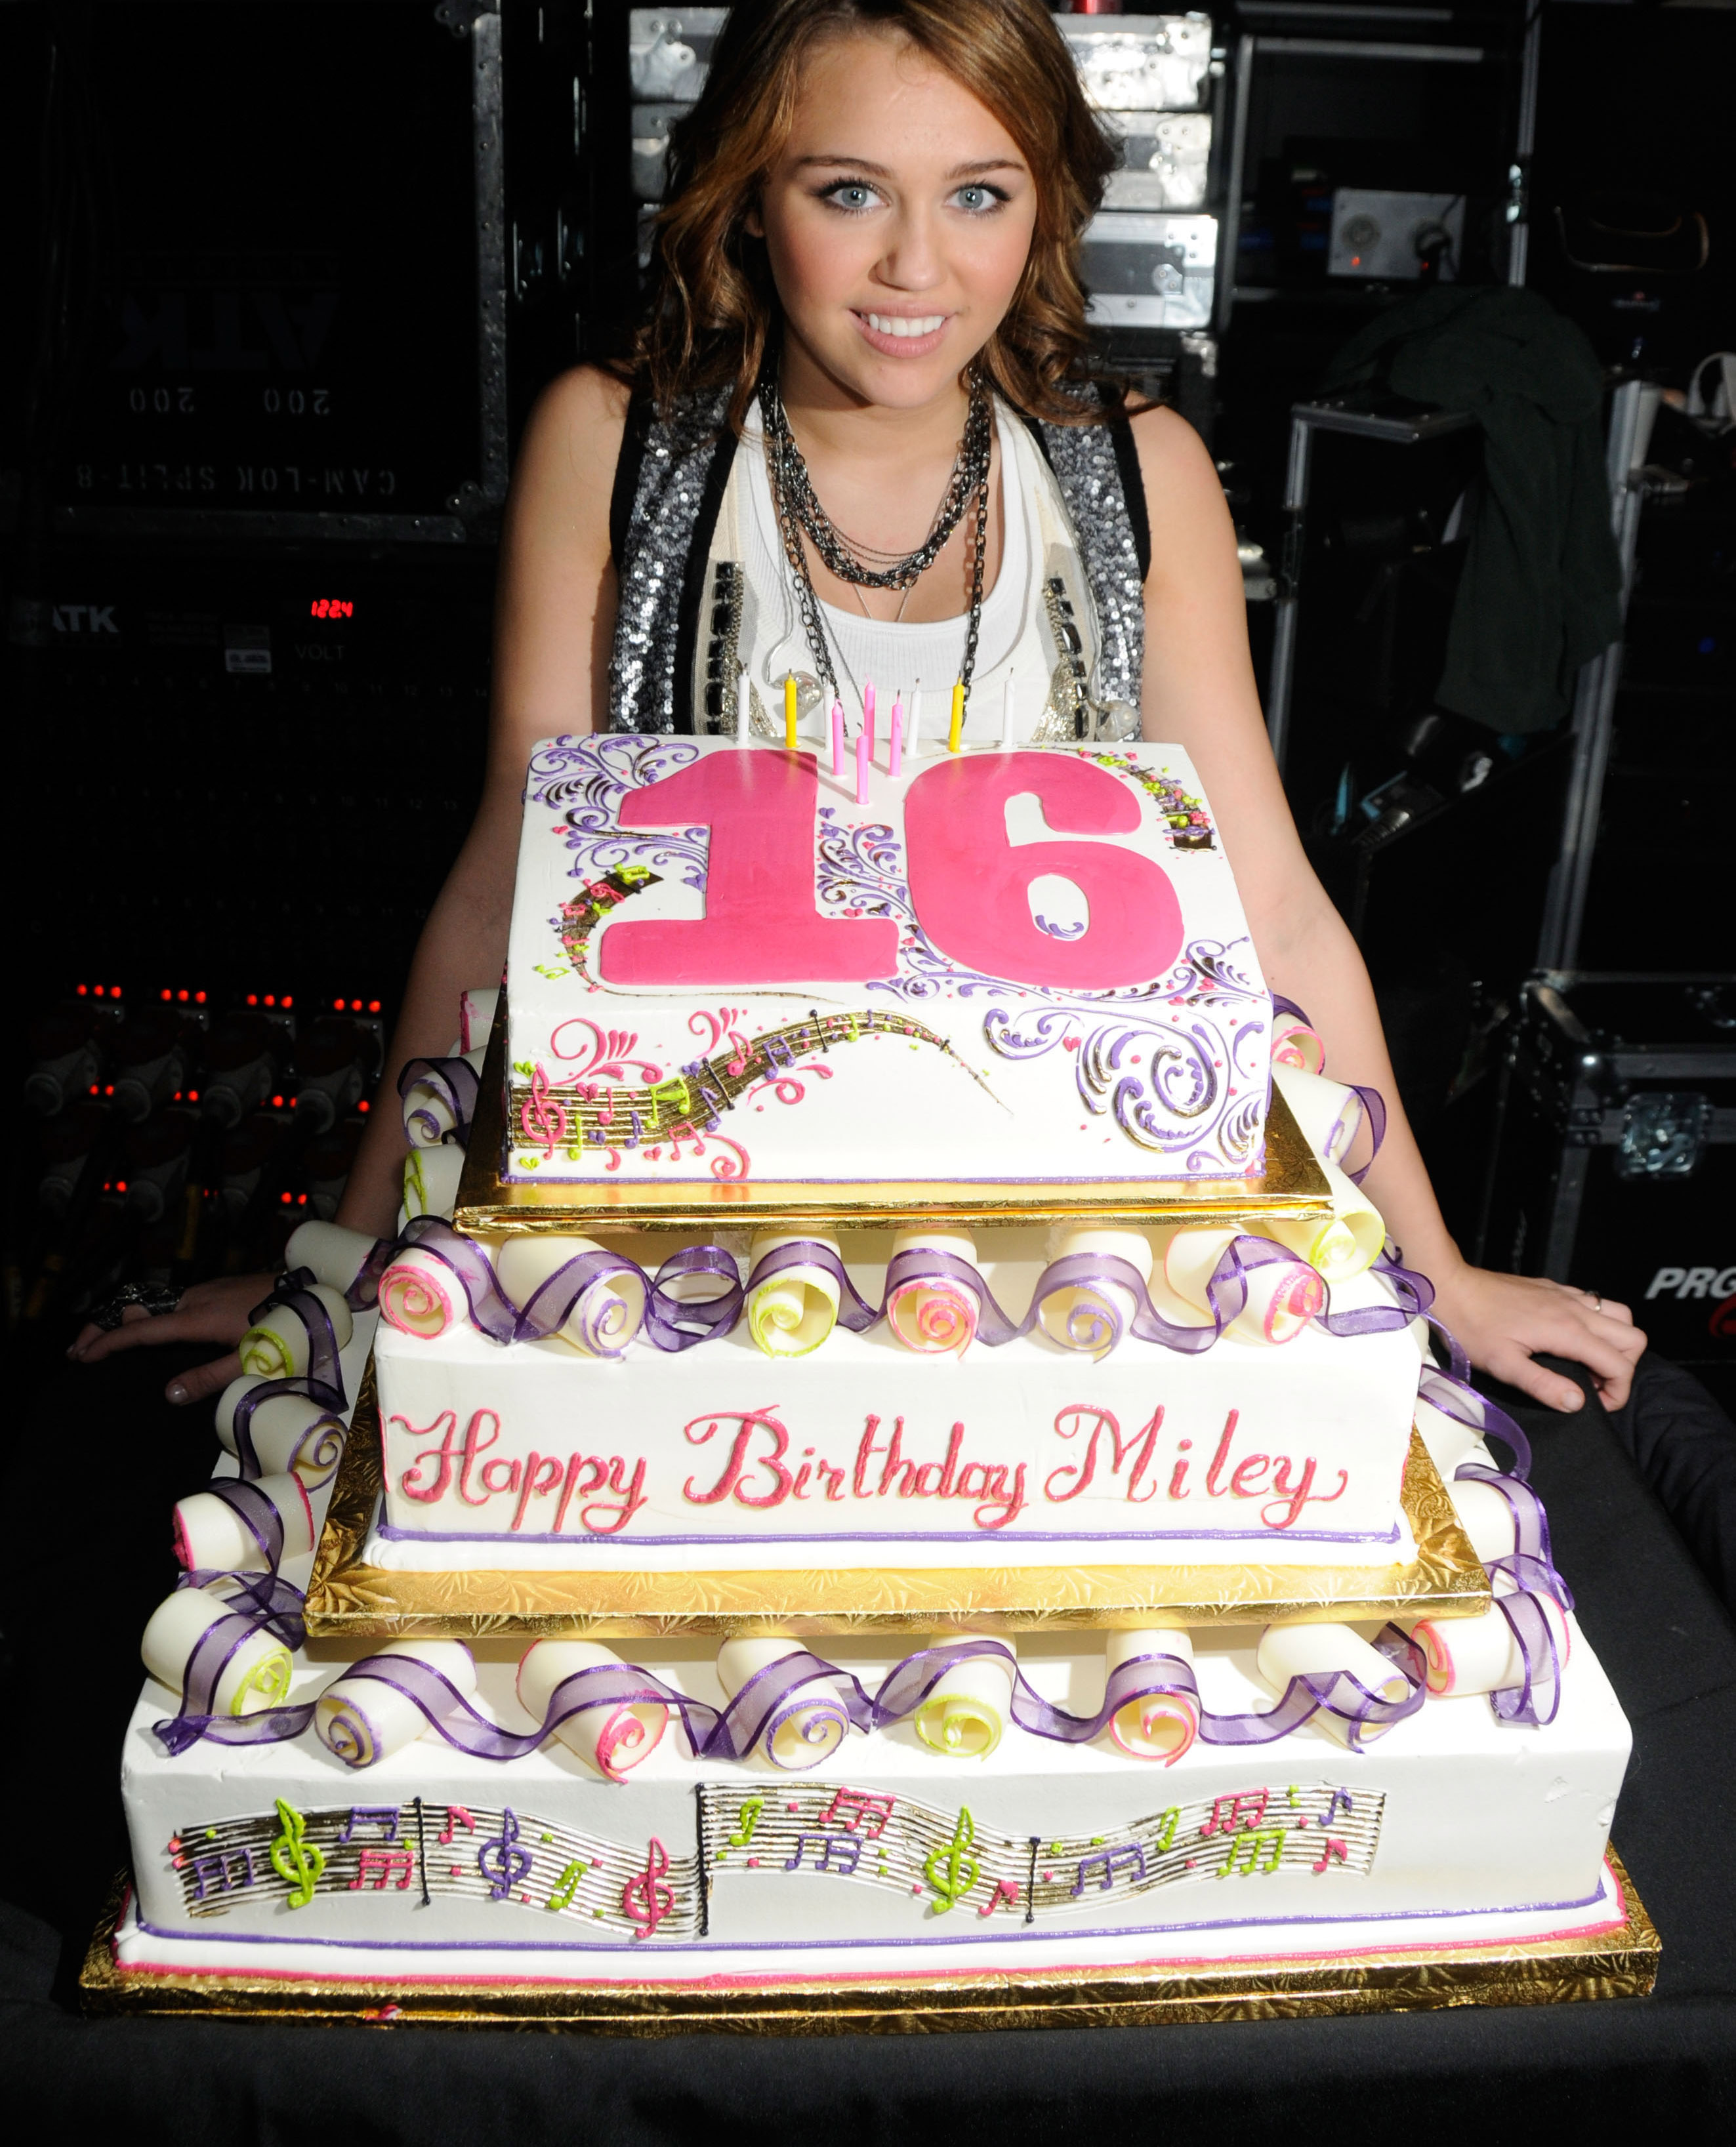 Terrific 12 Insane Cakes Your Favorite Stars Had For Their 16Th Birthdays Funny Birthday Cards Online Inifodamsfinfo